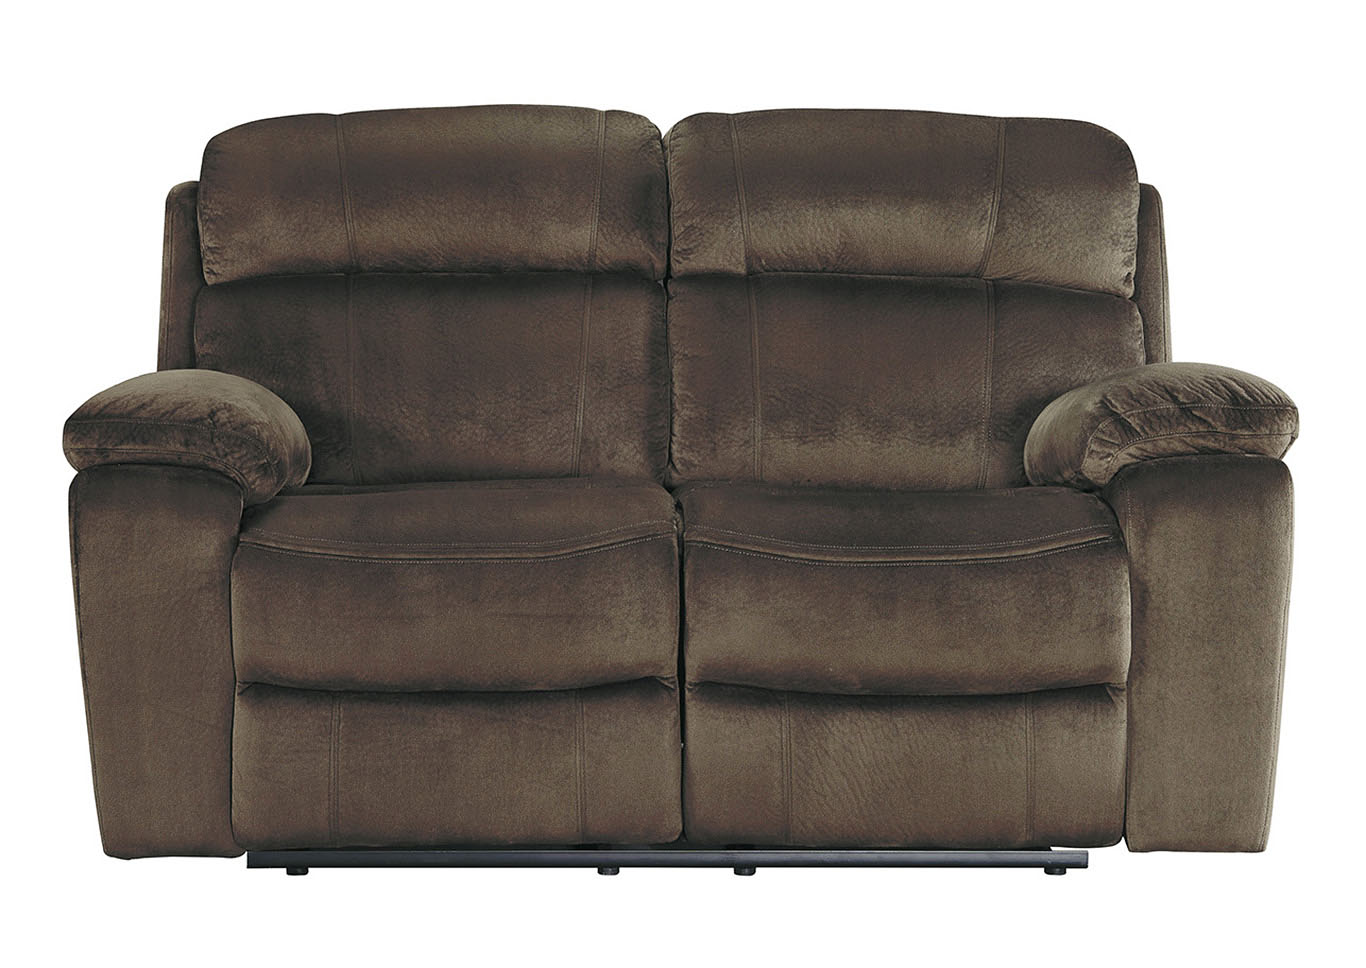 Davis Home Furniture Asheville Nc Uhland Chocolate Power Reclining Loveseat